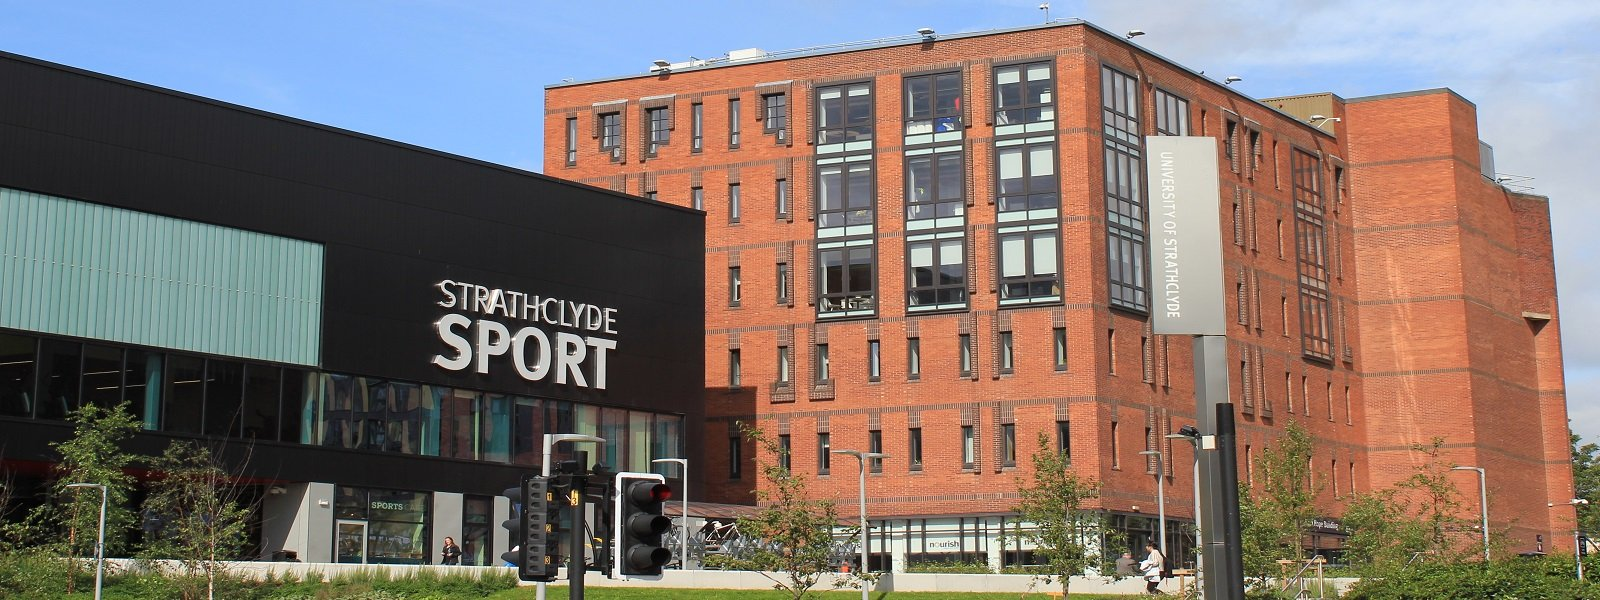 The Lord Hope Building, Strathclyde University